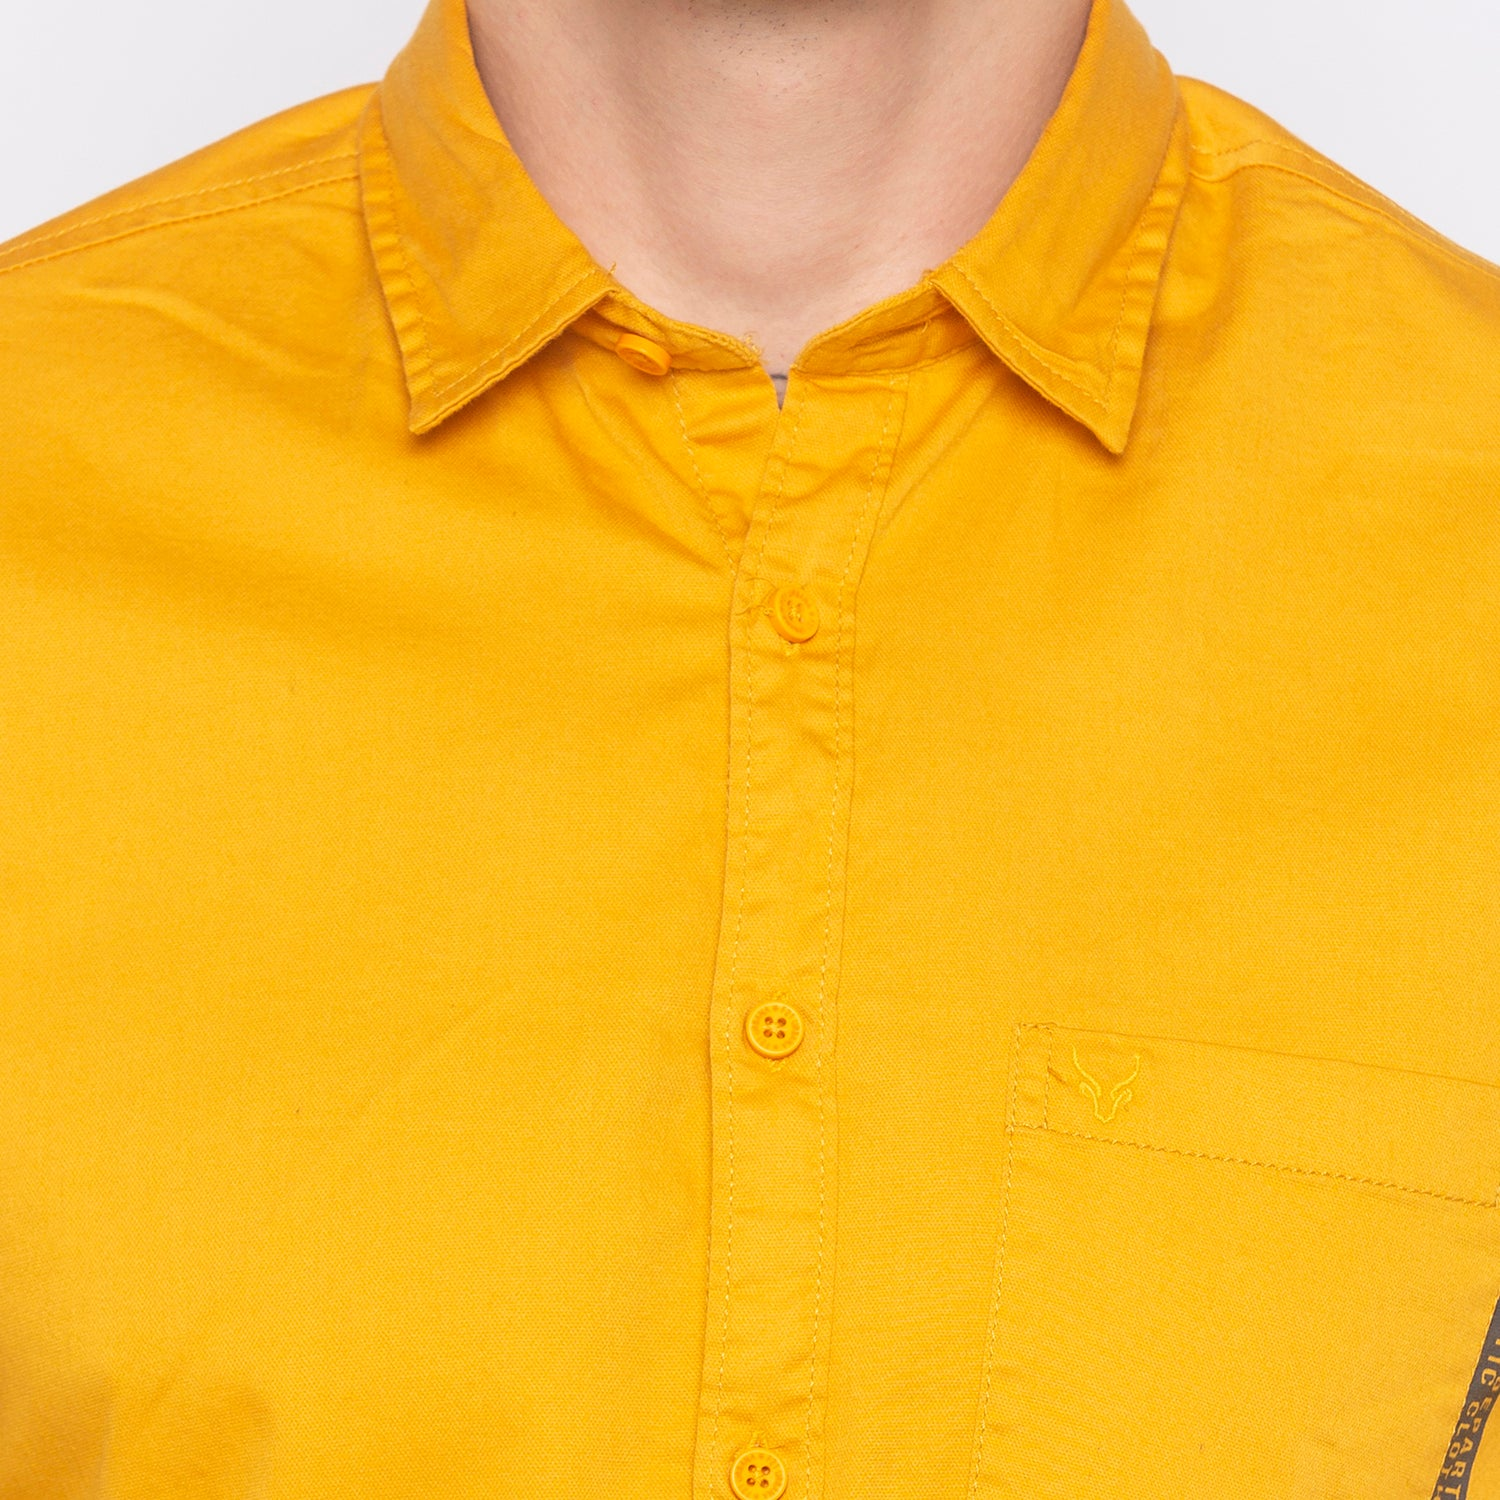 Solid Mustard Casual Shirt-5